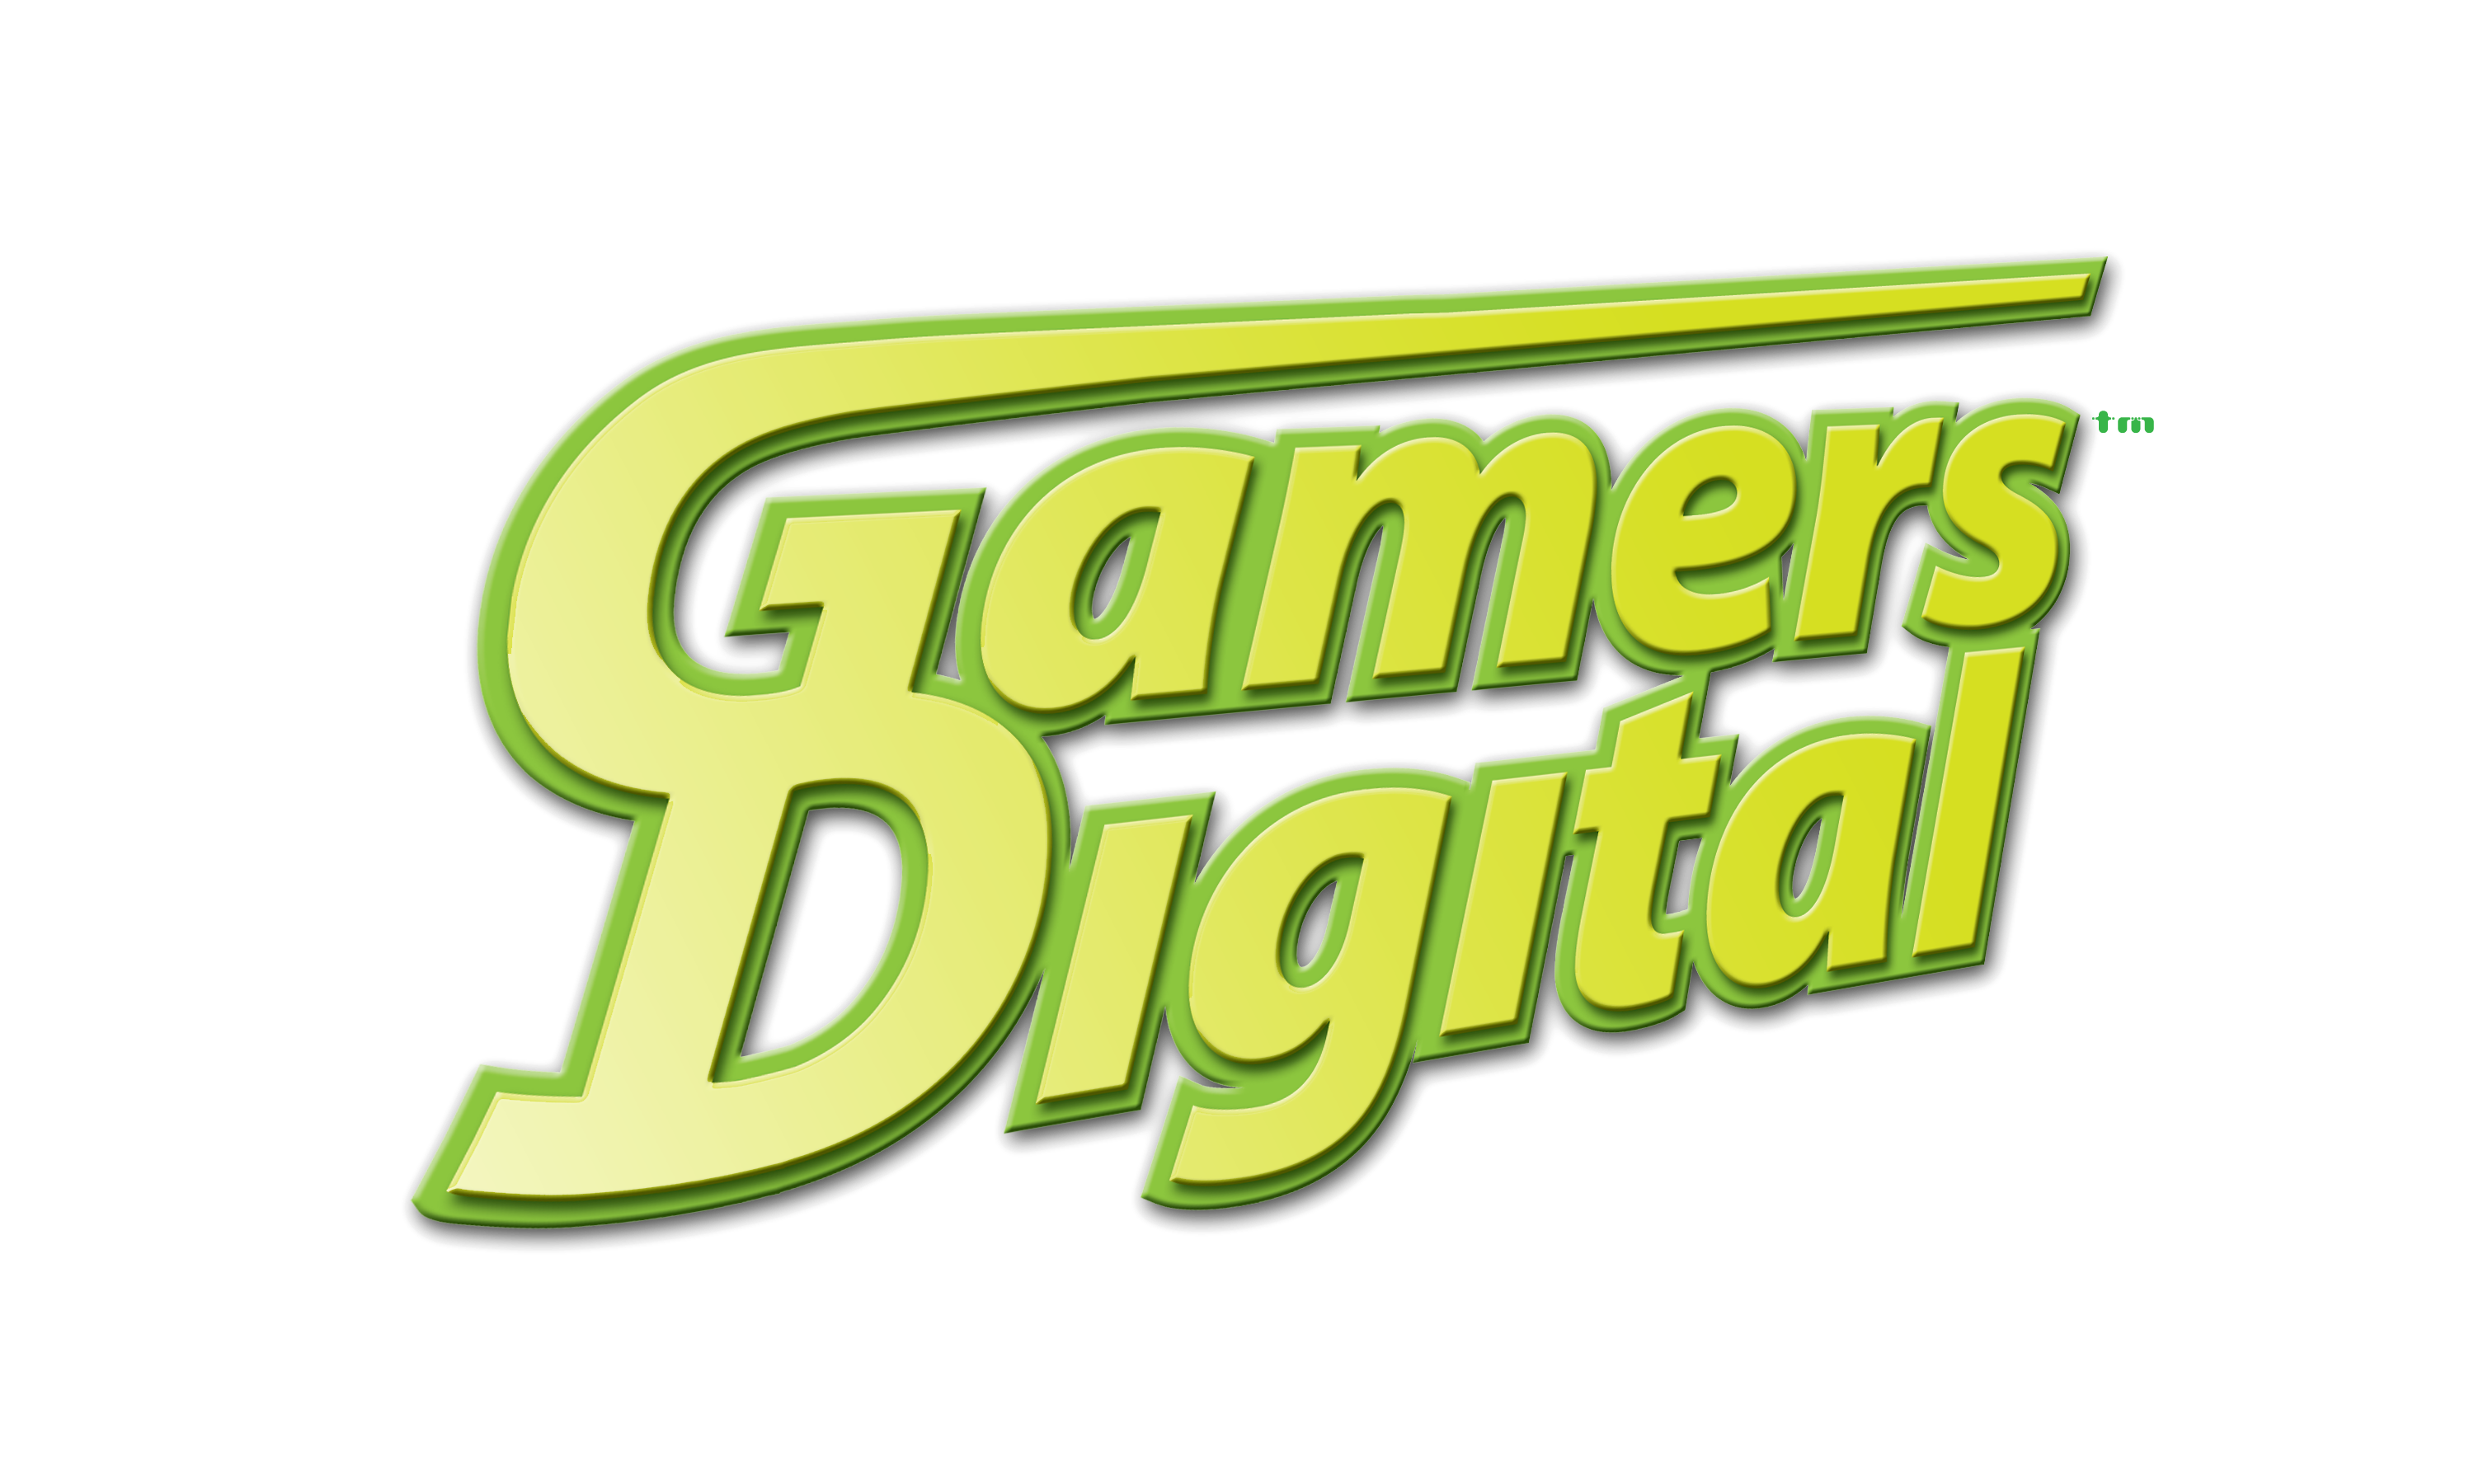 Gamers Digital